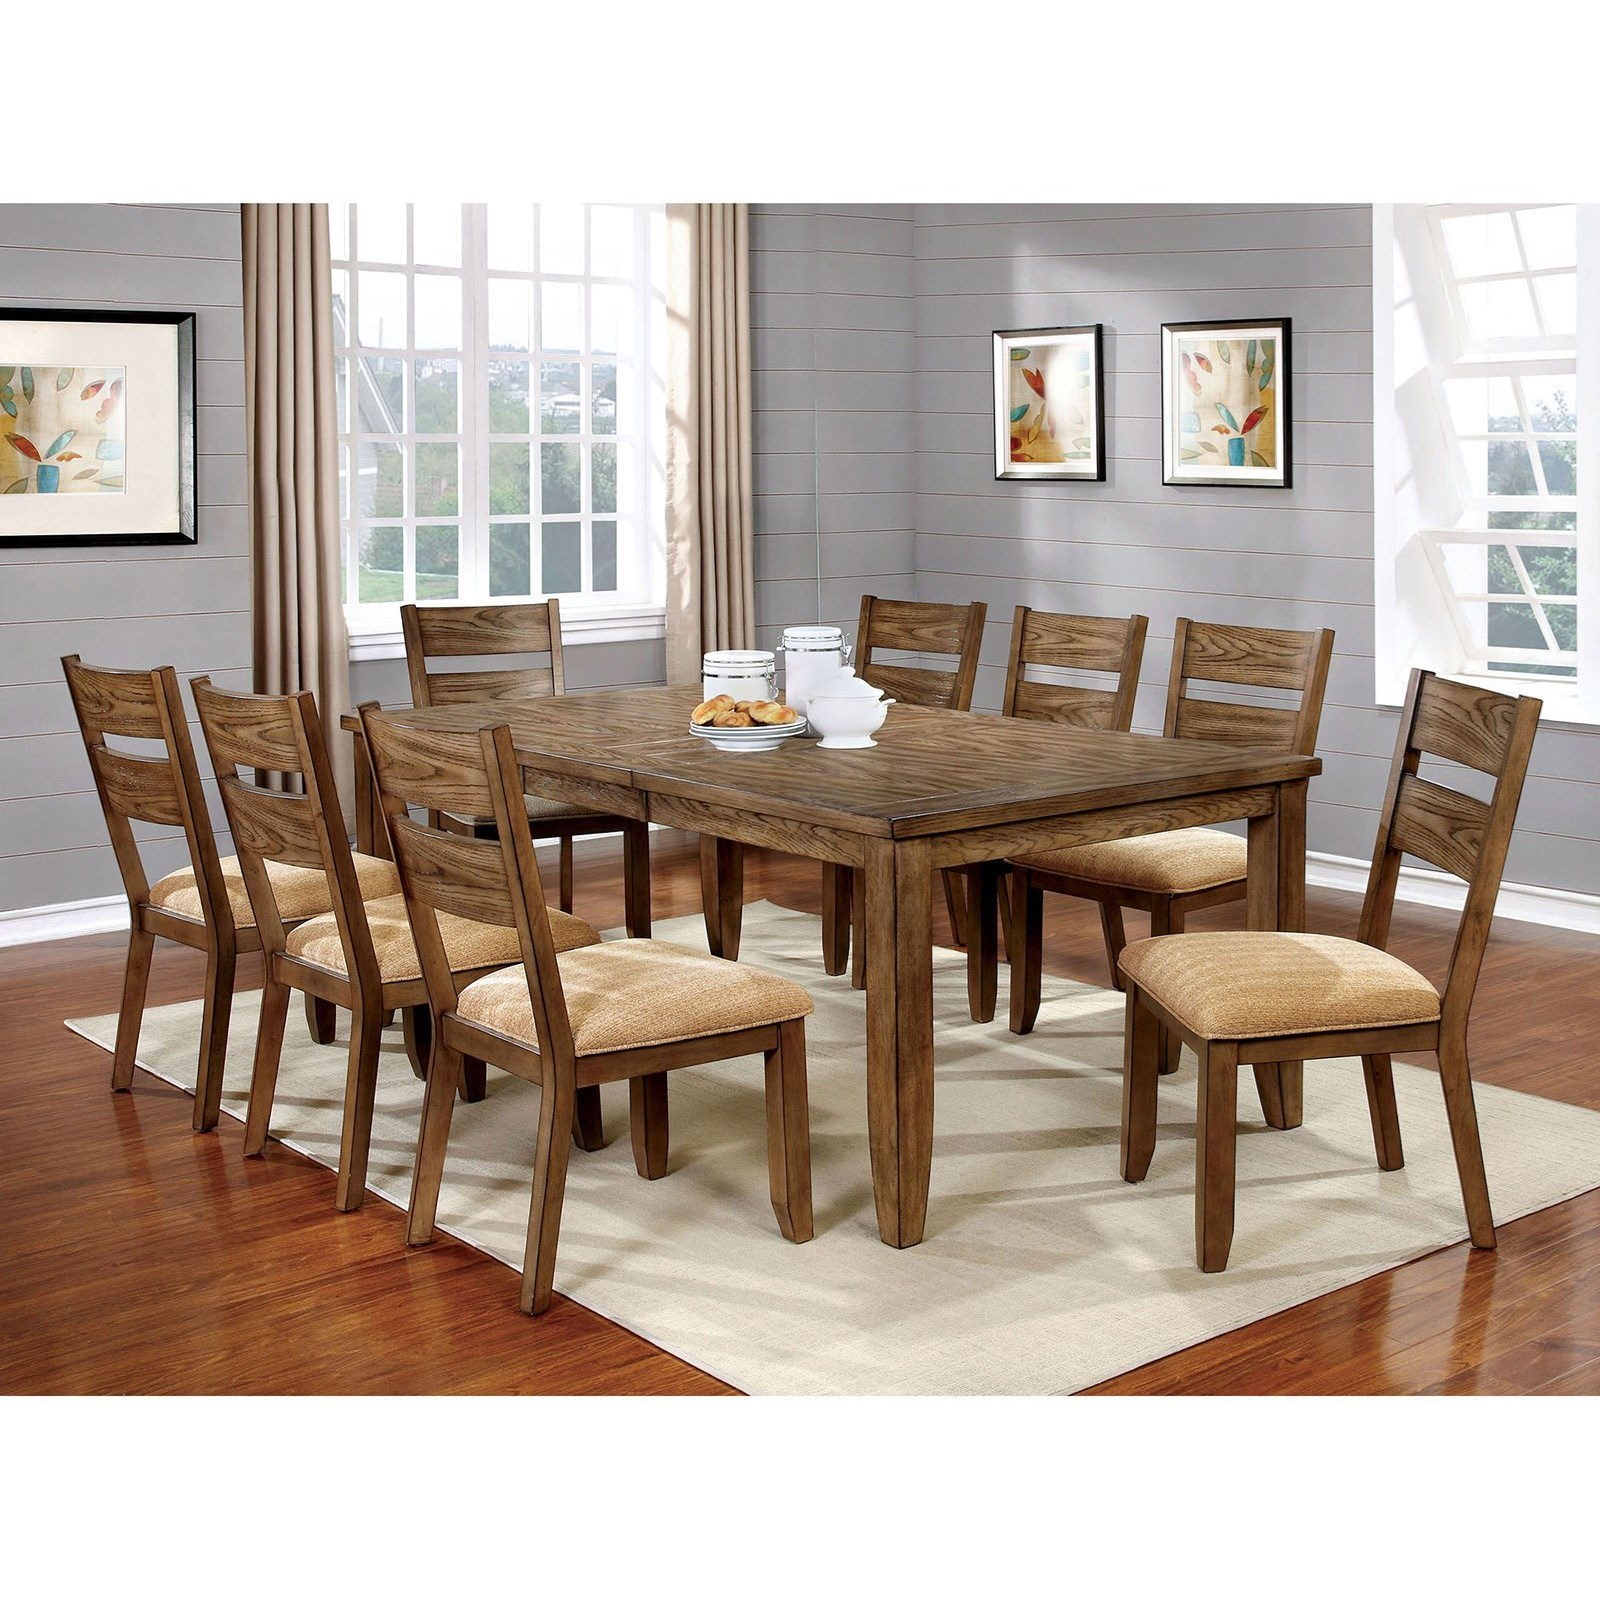 8 Chair Dining Set Ava 9 Piece Casual Dining Set With 1 Table Leaf By Furniture Of America At Rooms For Less